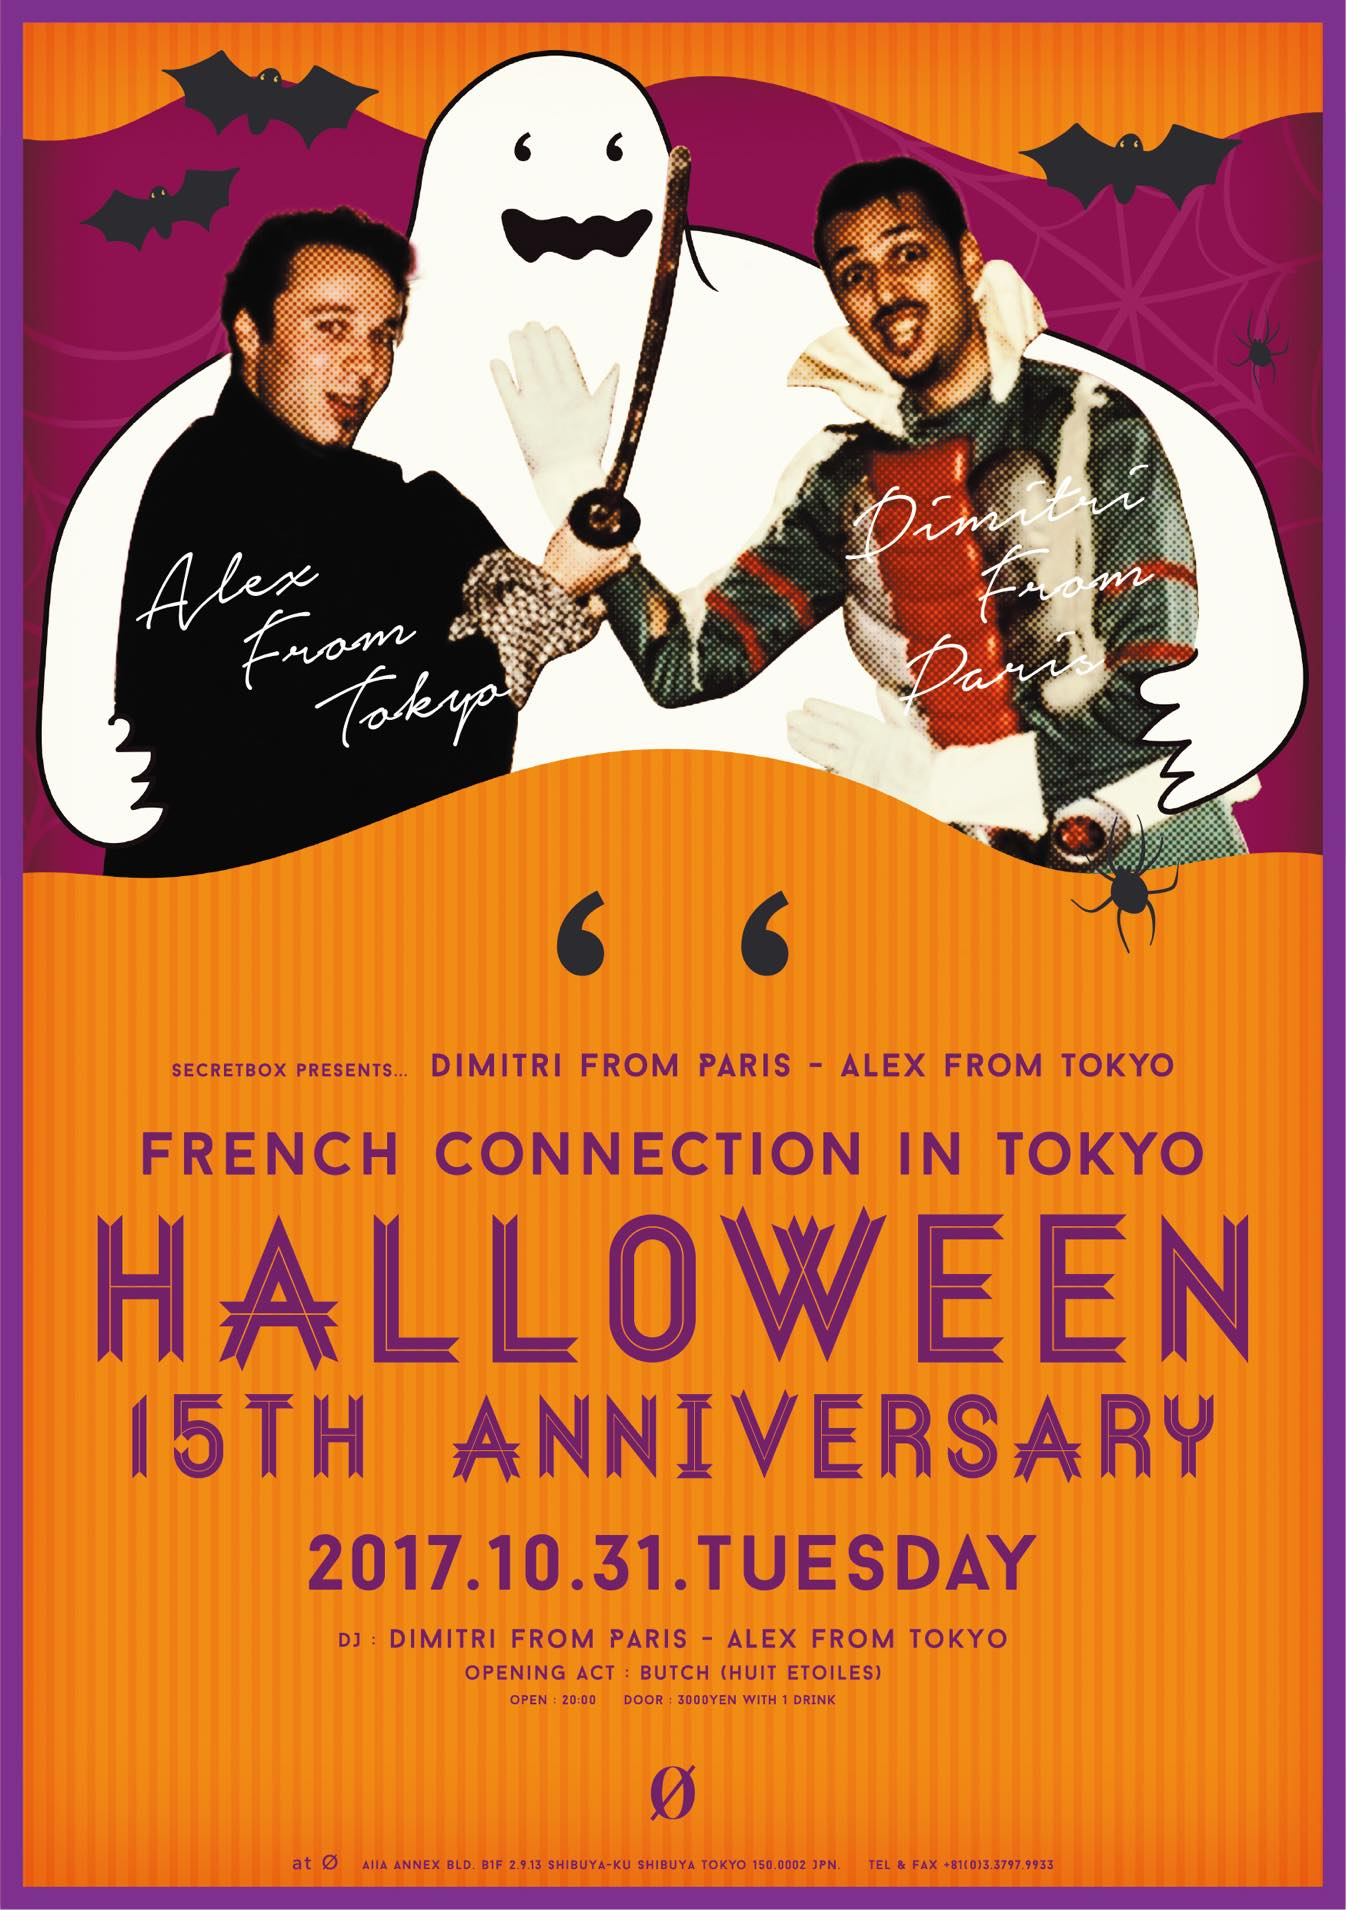 secretbox presents…  Dimitri From Paris – Alex From Tokyo  French Connection in Tokyo Halloween 15th Anniversary